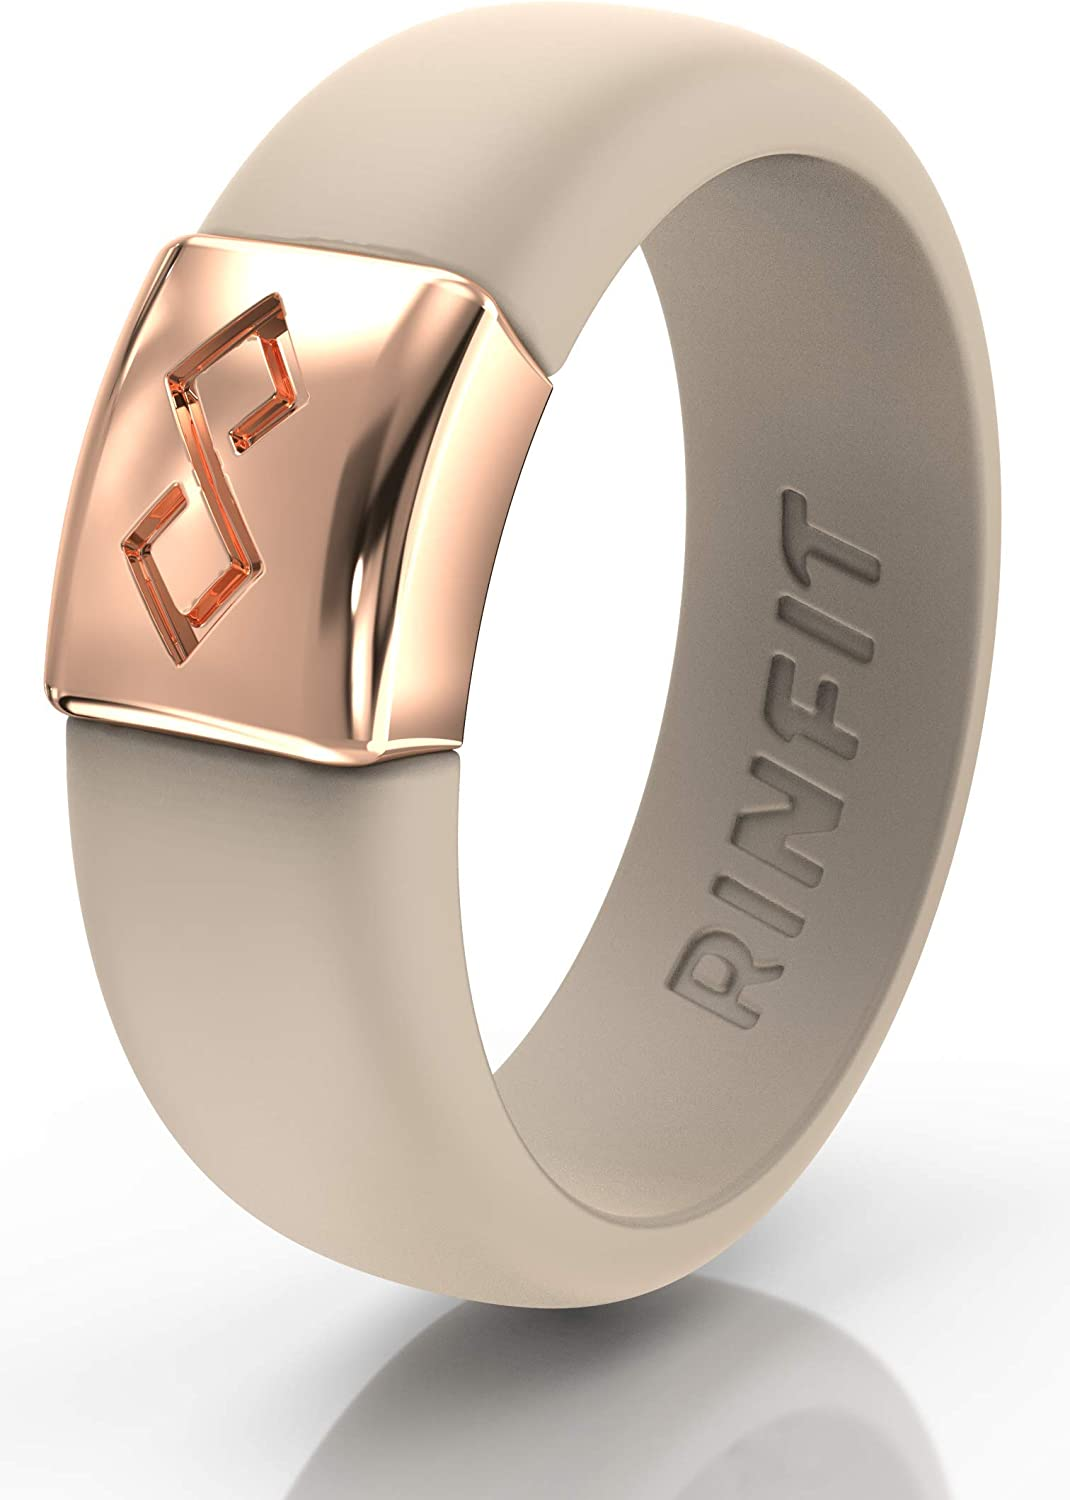 Rinfit Silicone Rings with Metal for Men and Women. Flexible & Comfortable Wedding Engagement Bands. U.S. Design Patent Pending